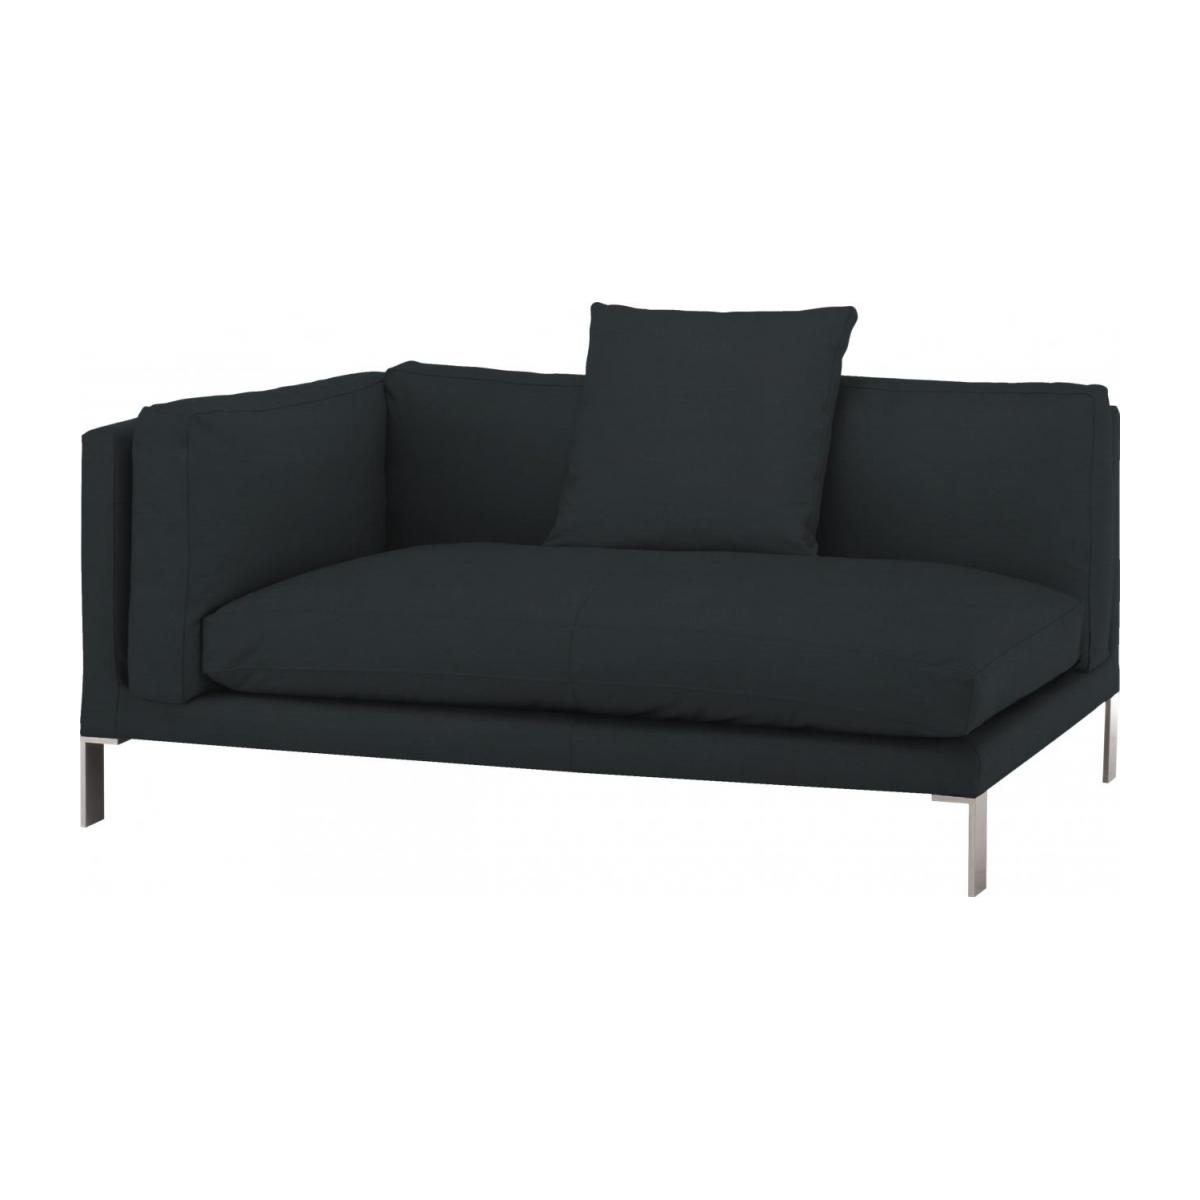 Leather left-arm 2 seater sofa n°1